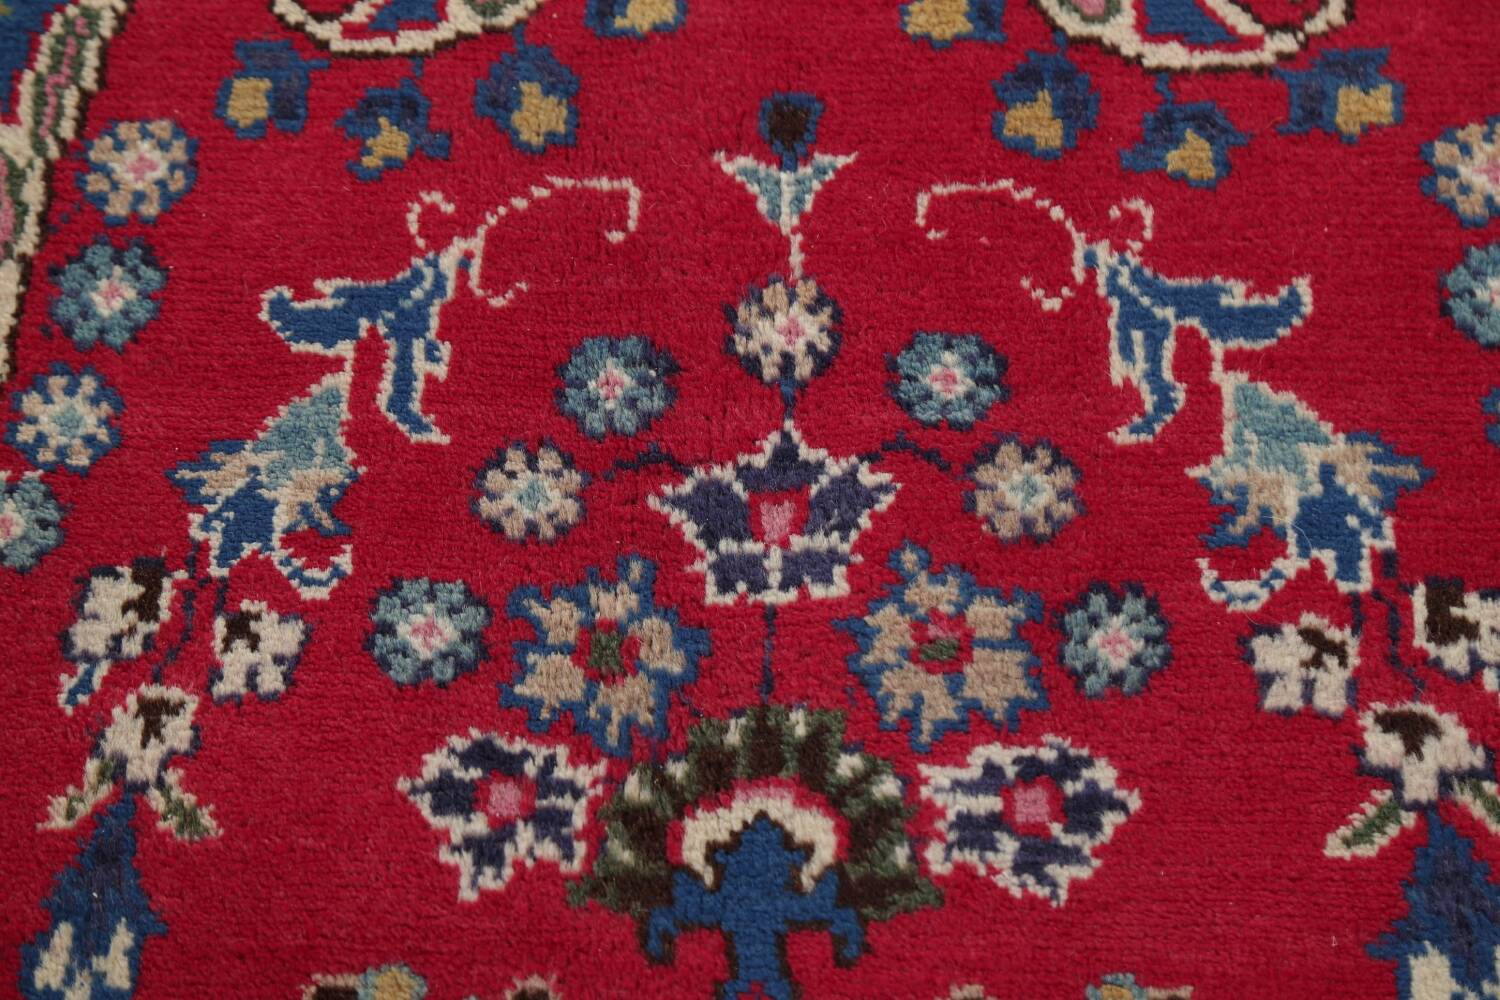 Floral Red Mashad Persian Area Rug 8x11 image 9